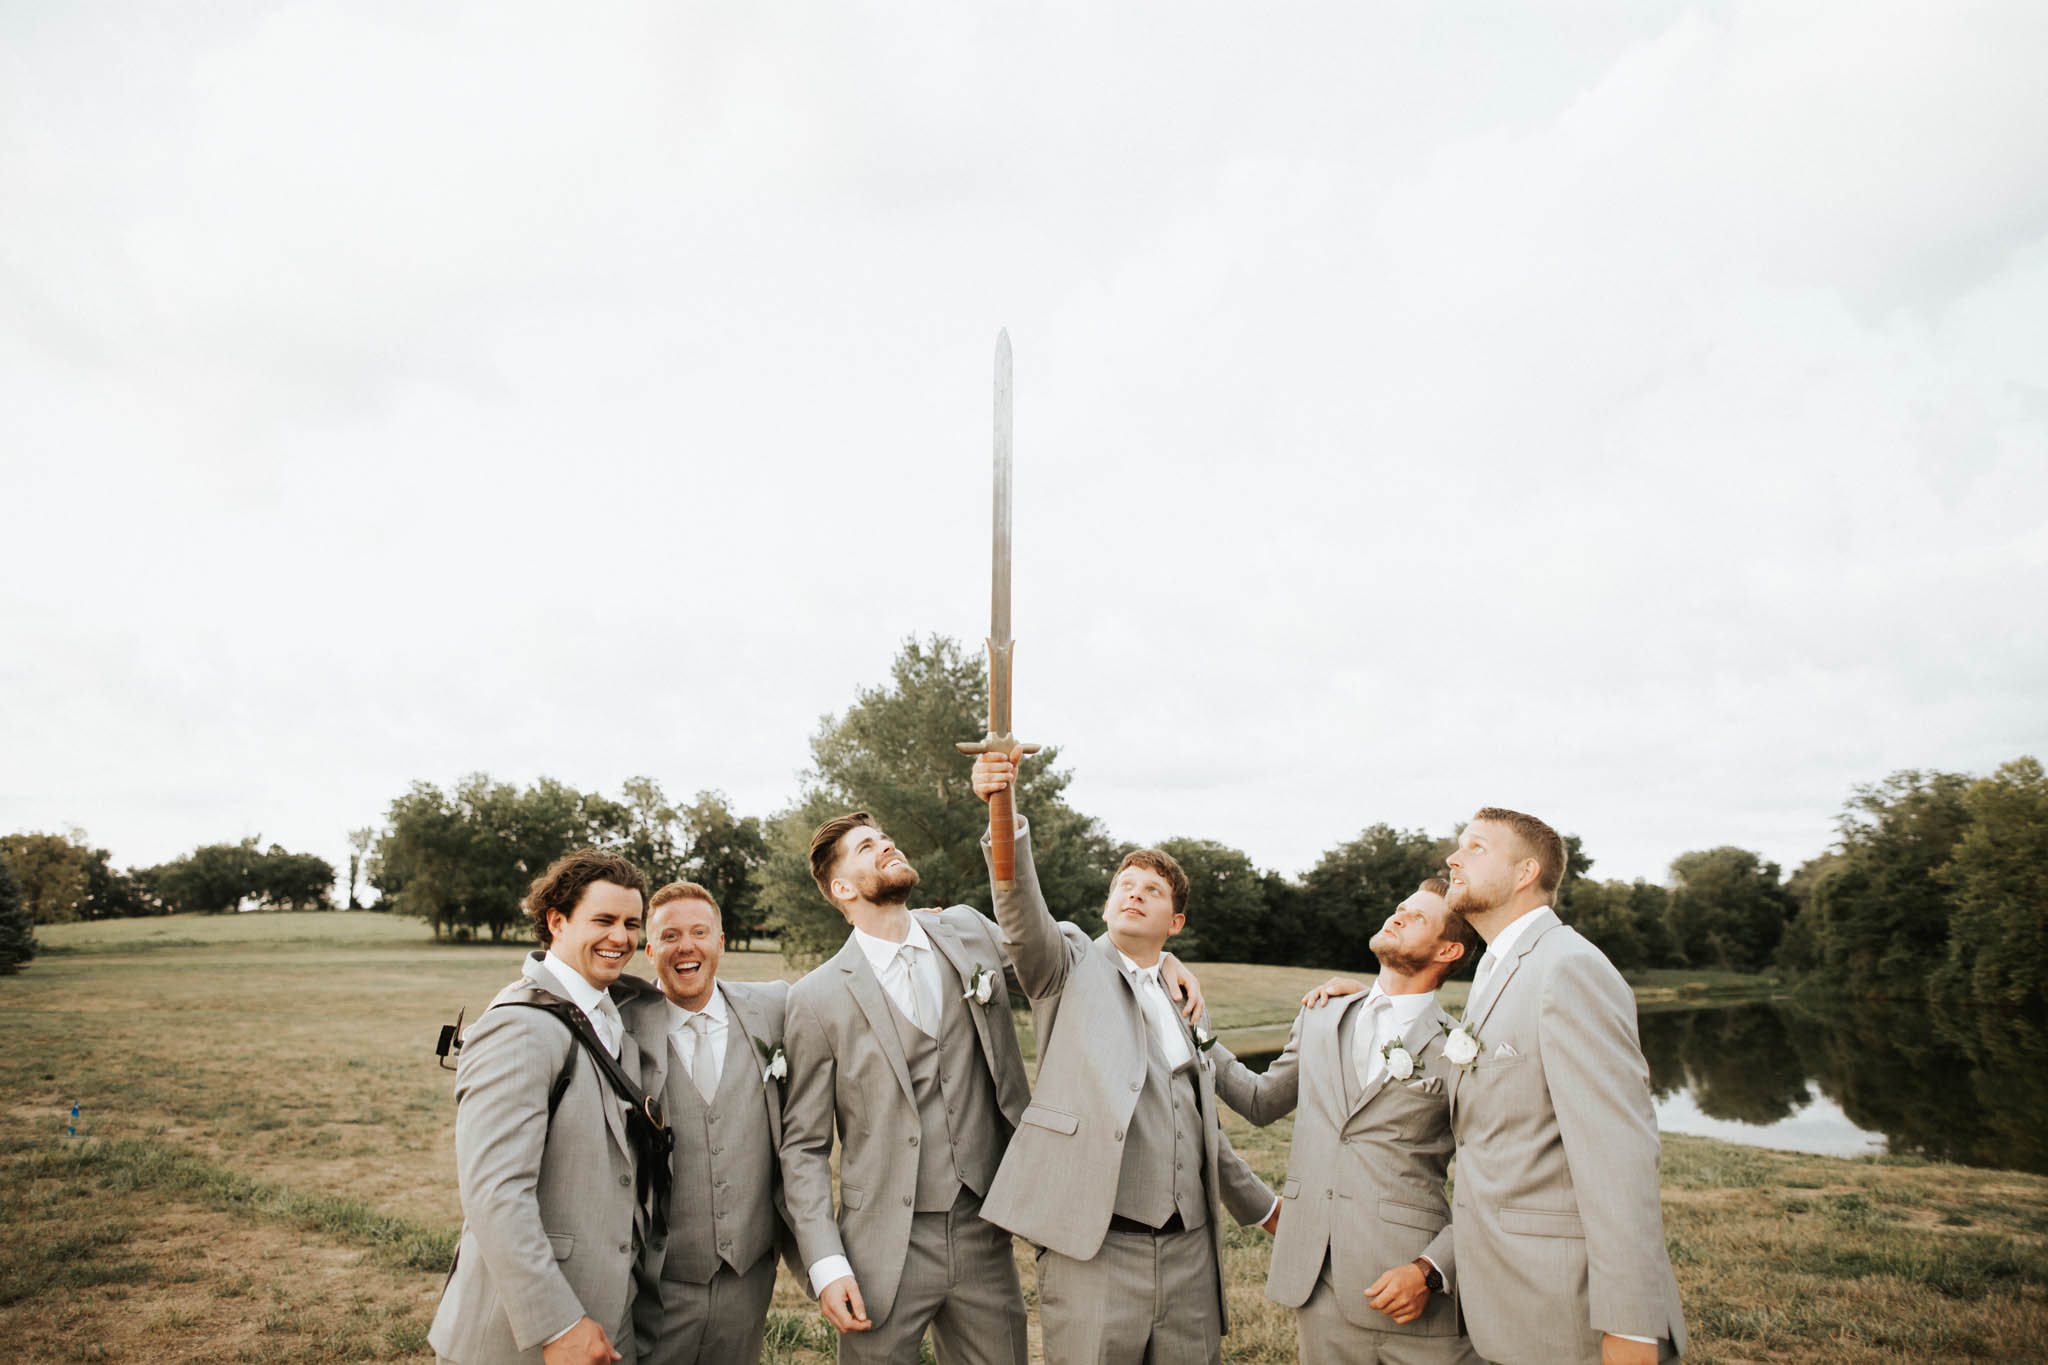 Groomsmen Photos-9.jpg